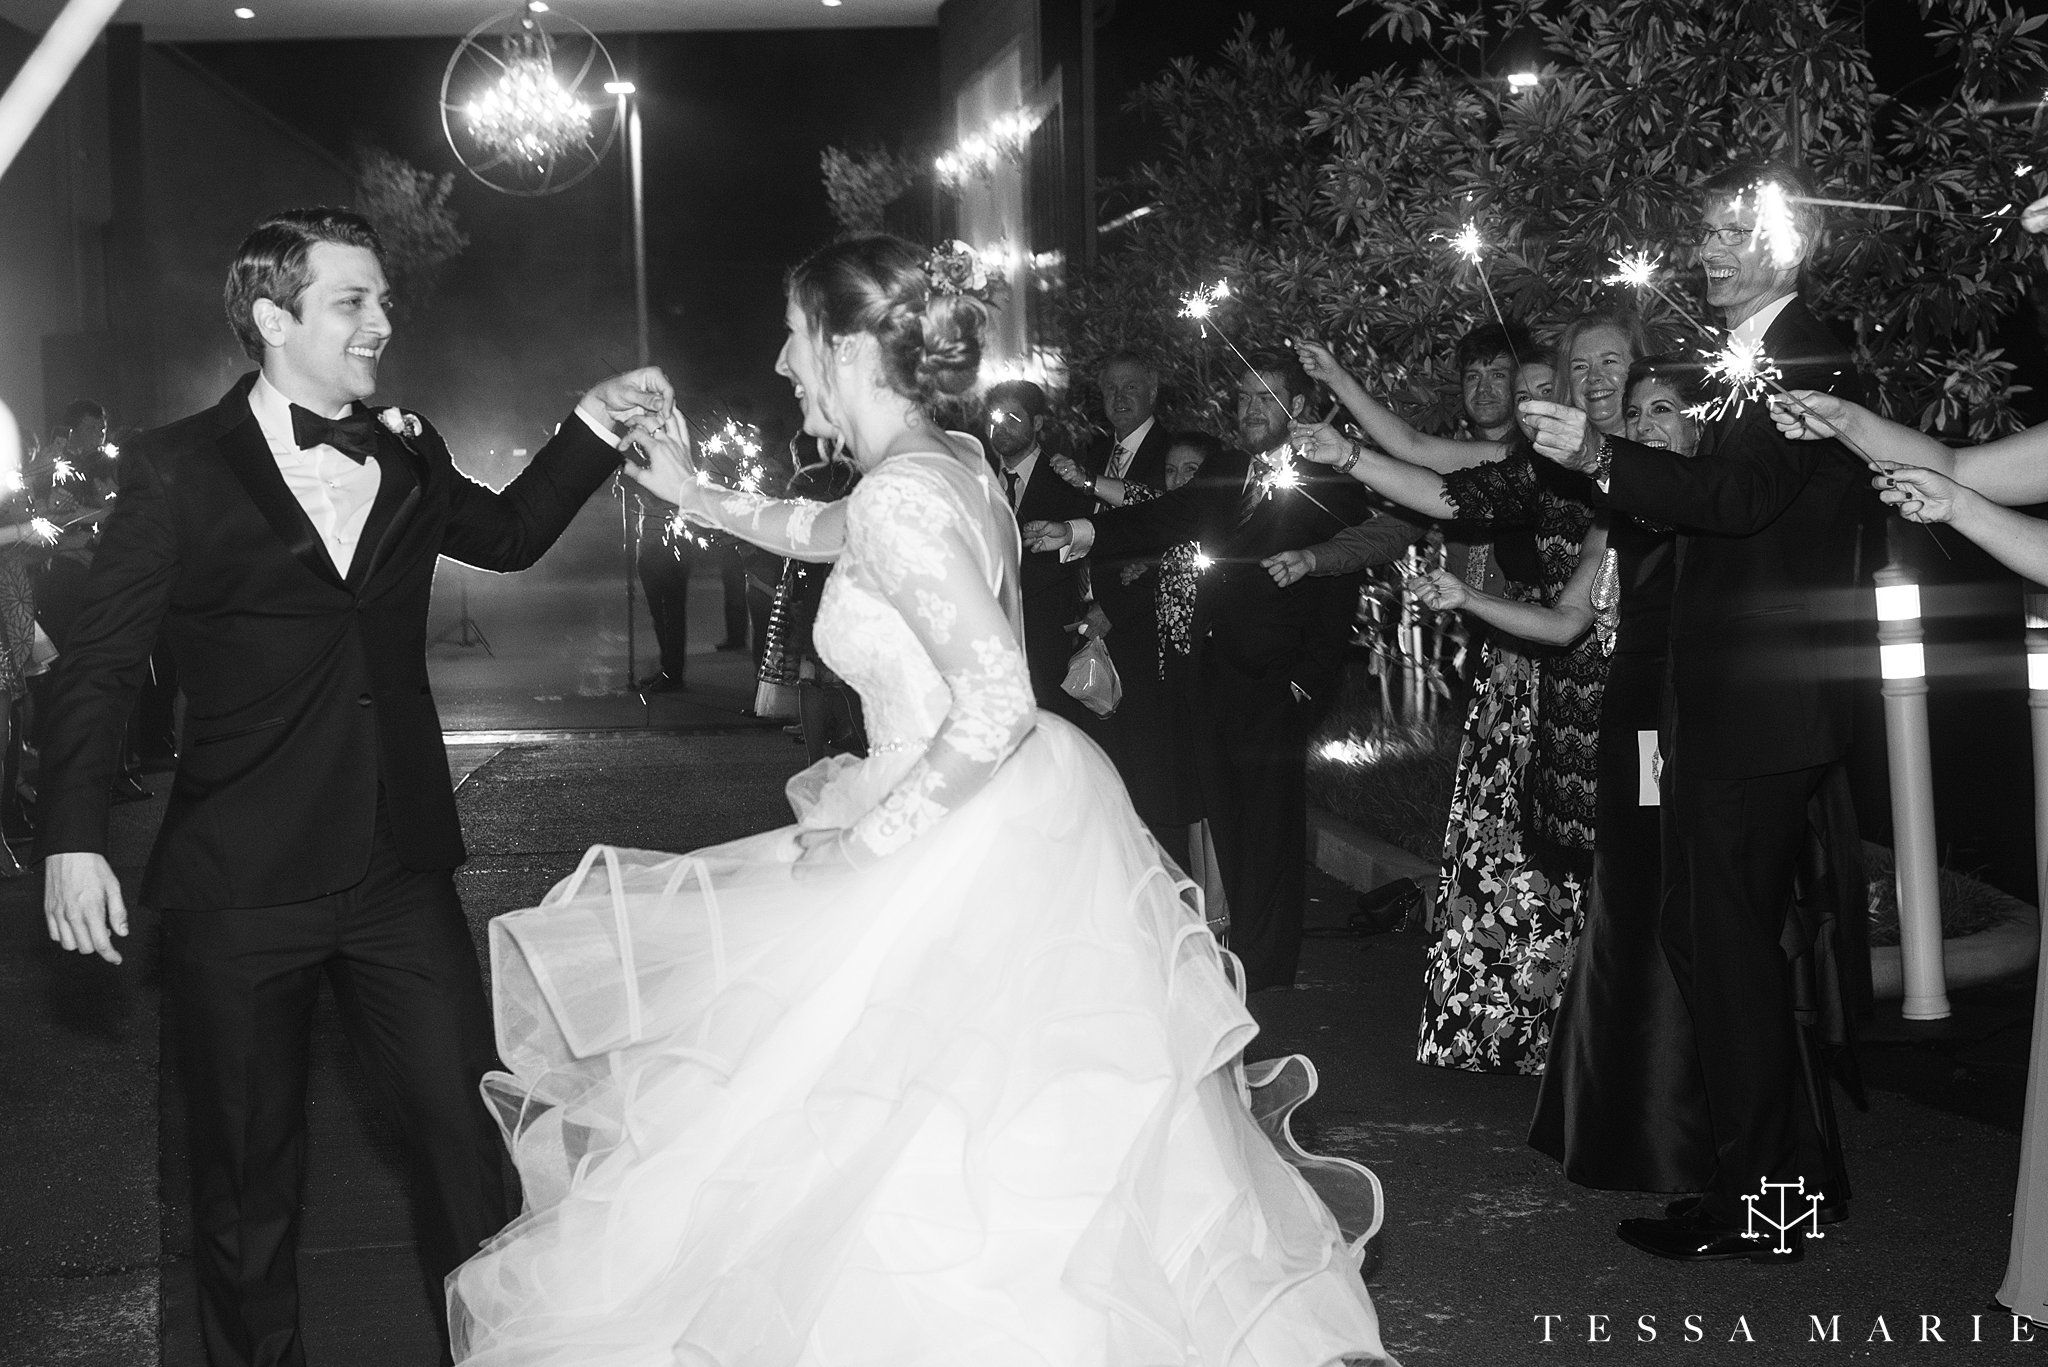 tessa_marie_weddings_estate_wedding_flourish_wedding_legendary_events_wedding_angels_bride_groom_wedding_Day_rainy_wedding_day_fall_october_wedding_atlantas_best_wedding_professionals_1041.jpg